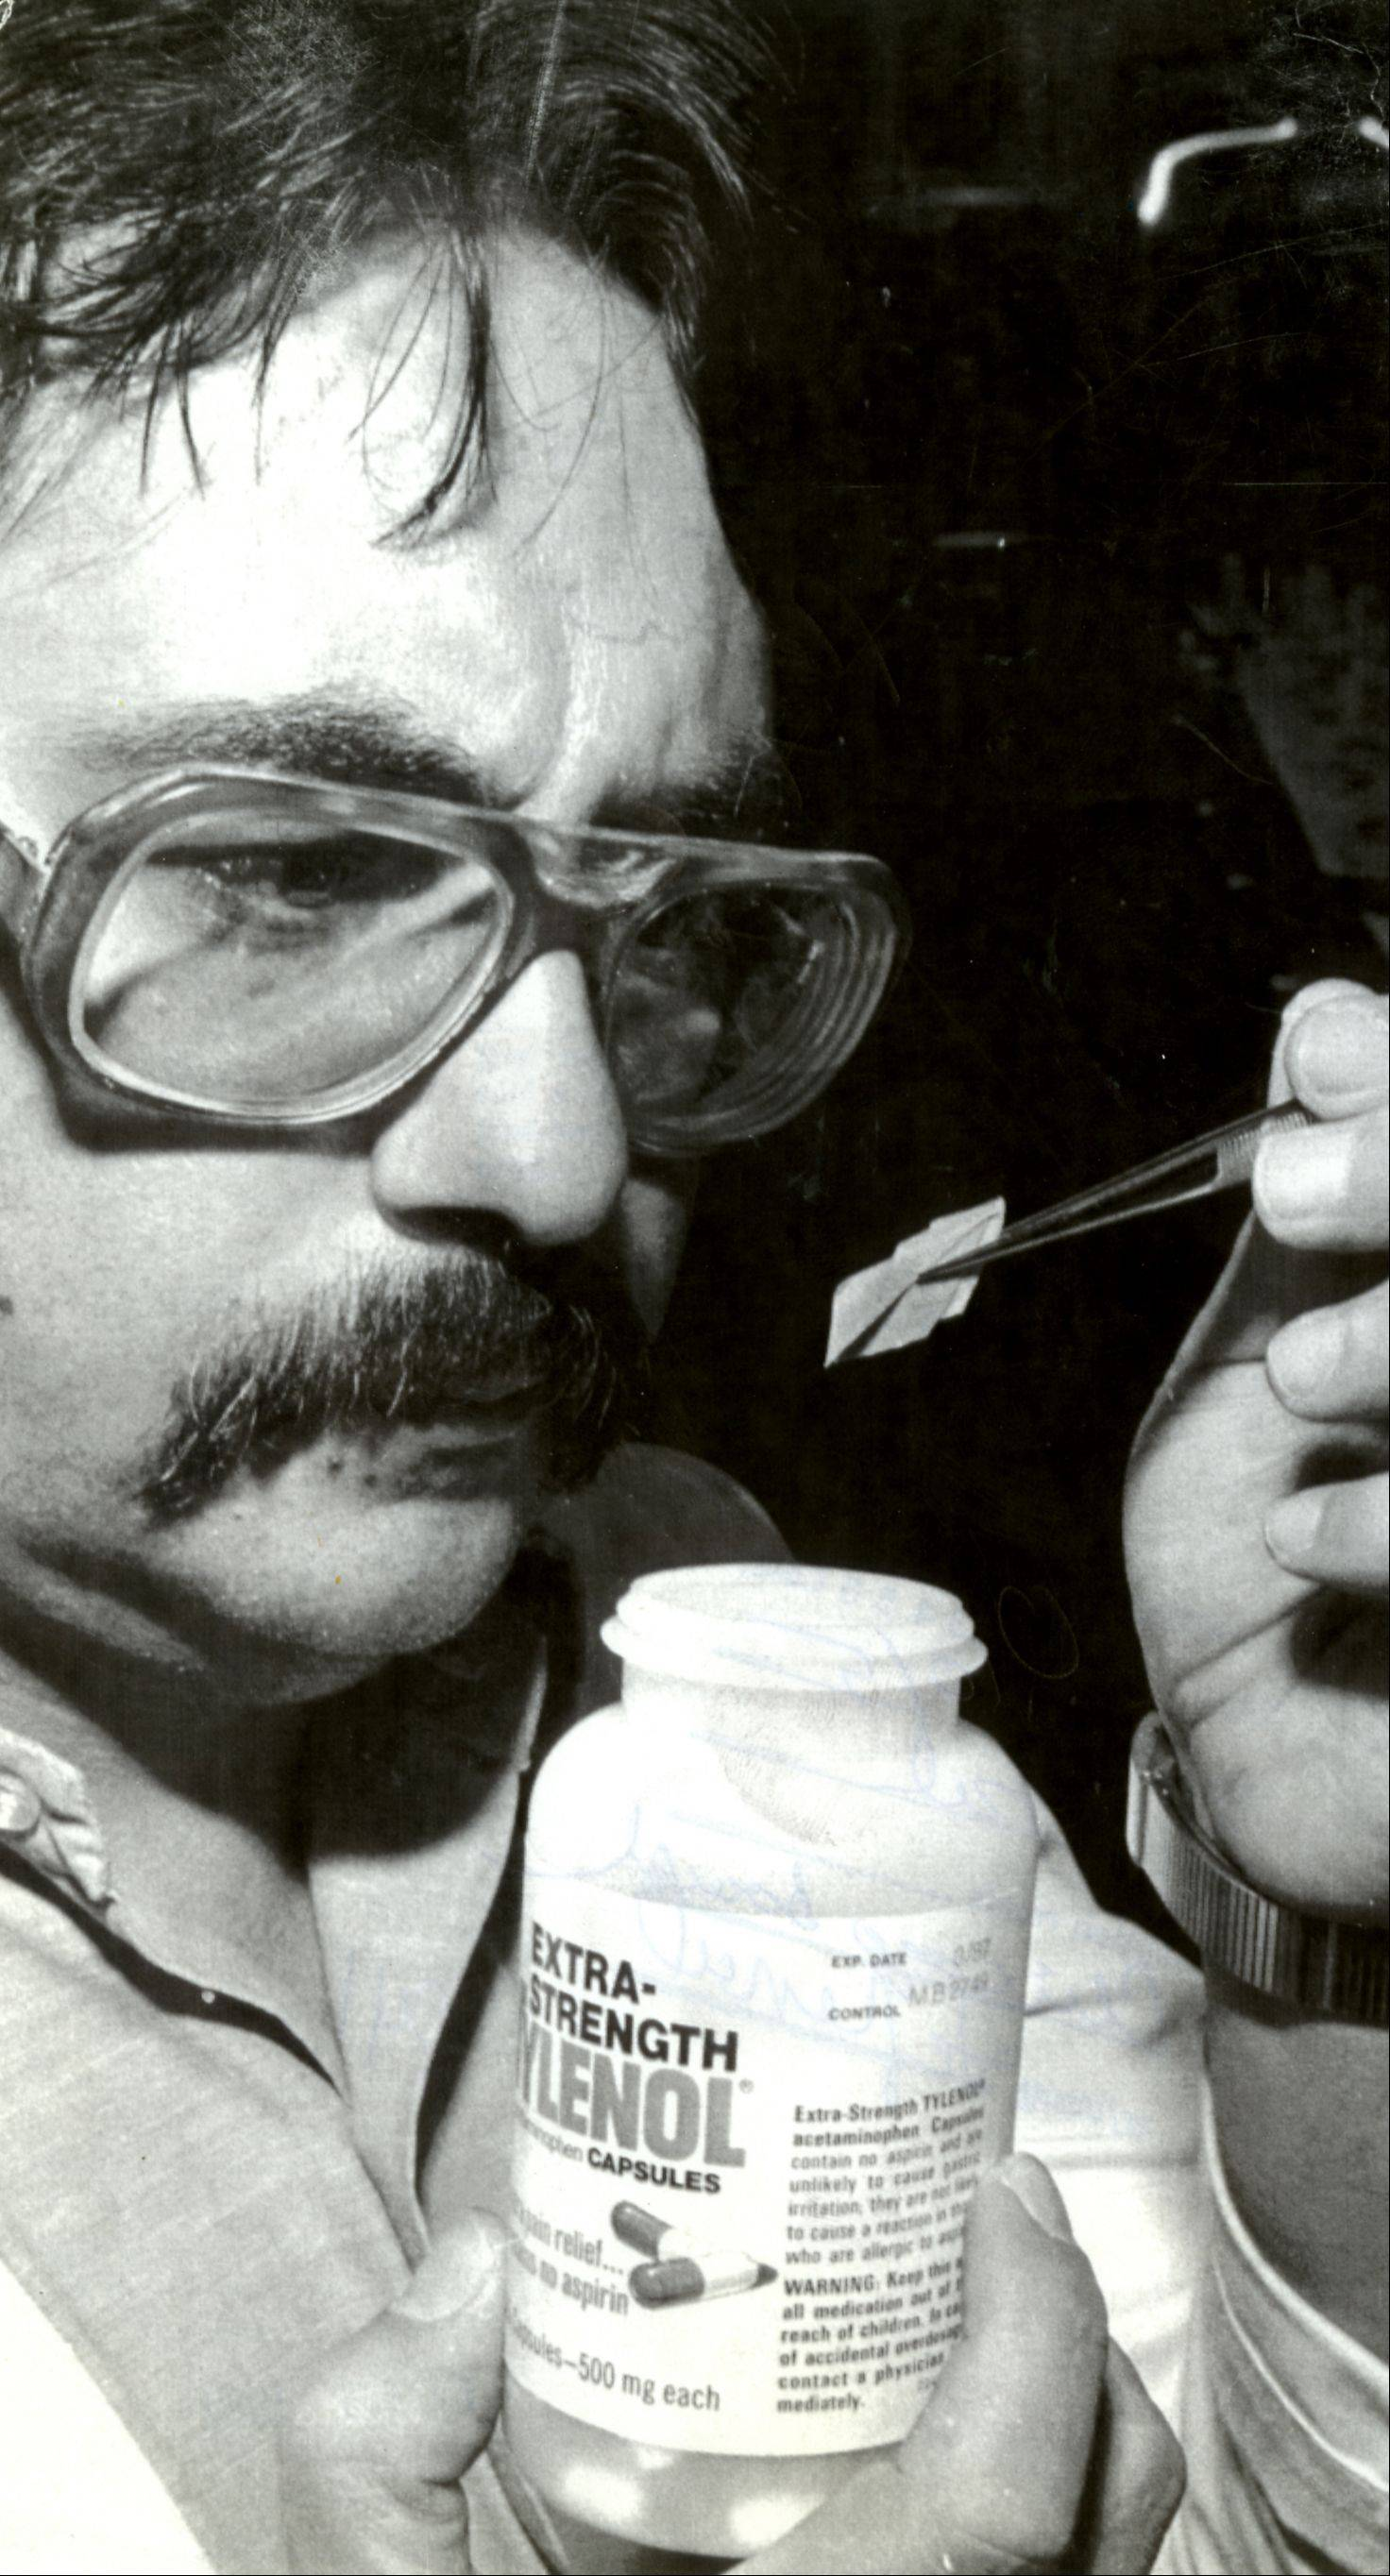 Chicago Board of Health chemist John Rasho tests Tylenol with a paper strip treated to detect cyanide.